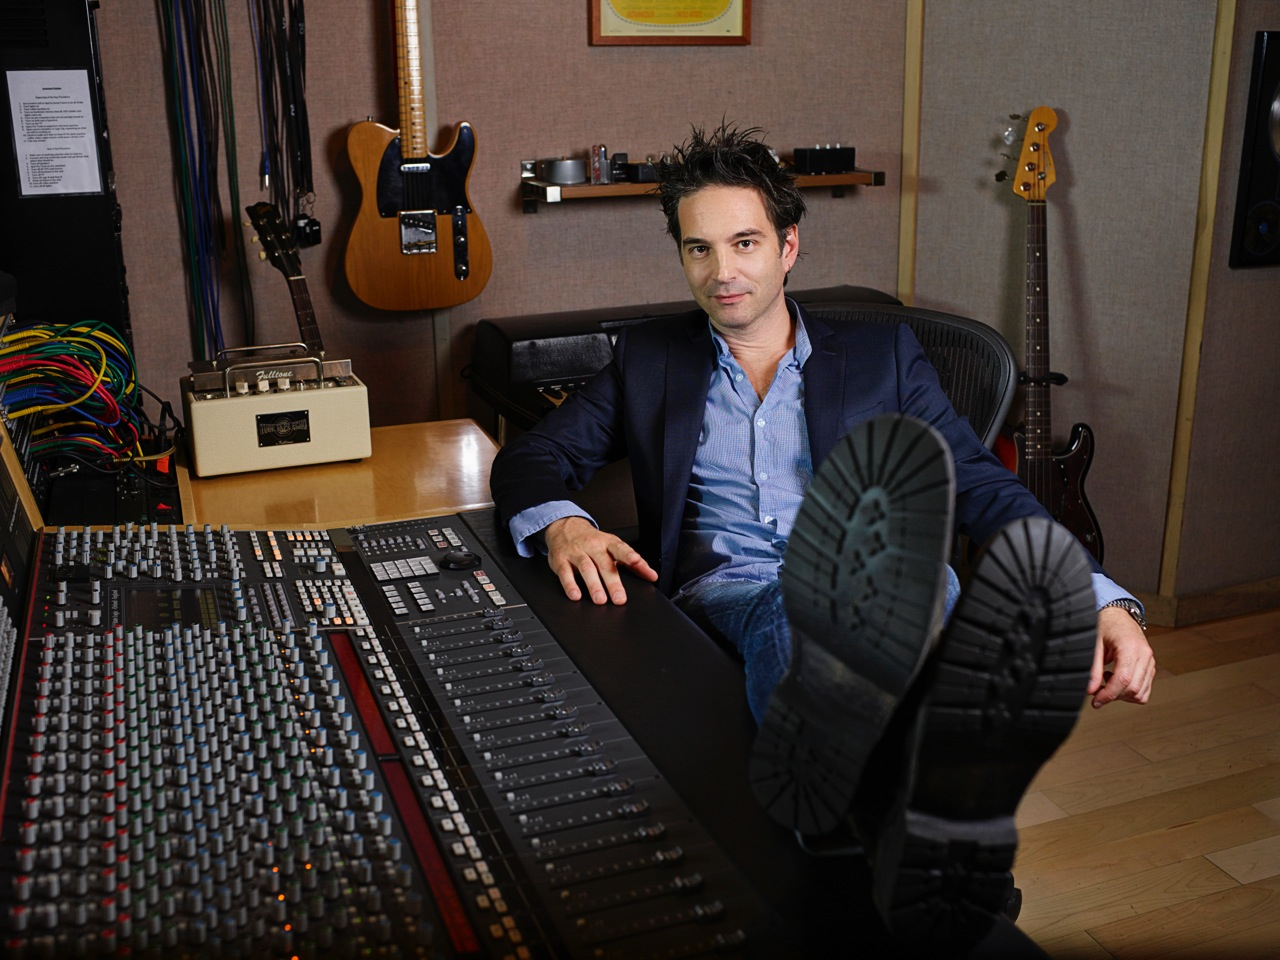 The Society of Composers and Lyricists Seminar: Setting the Tone - Jeff Russo